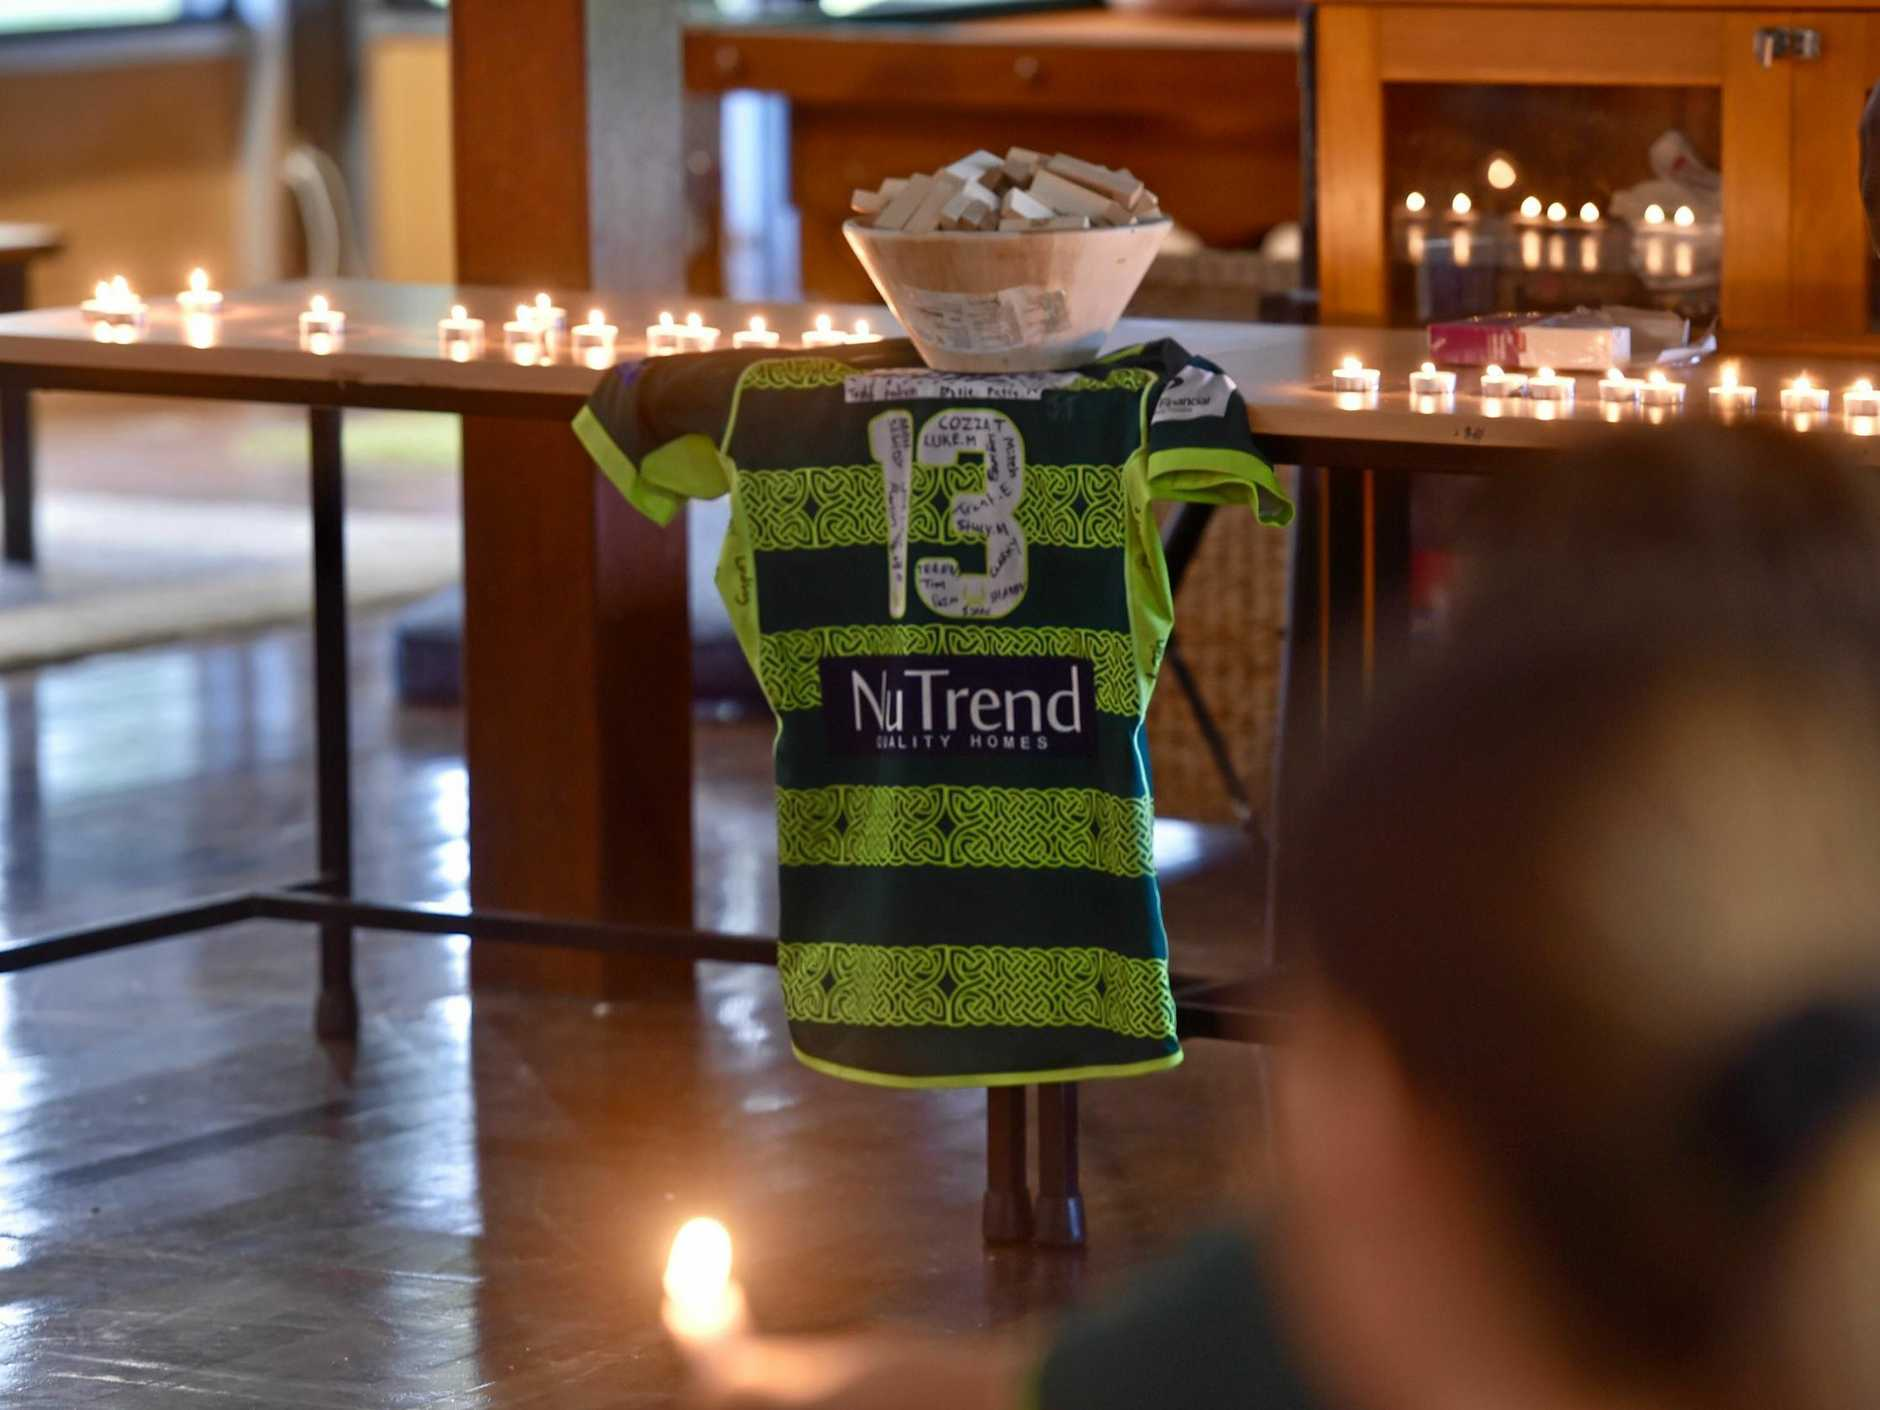 Friends, teammates and opponents held a candlelight vigil for Jacob Mabb at the USC Rugby Club on Wednesday night.